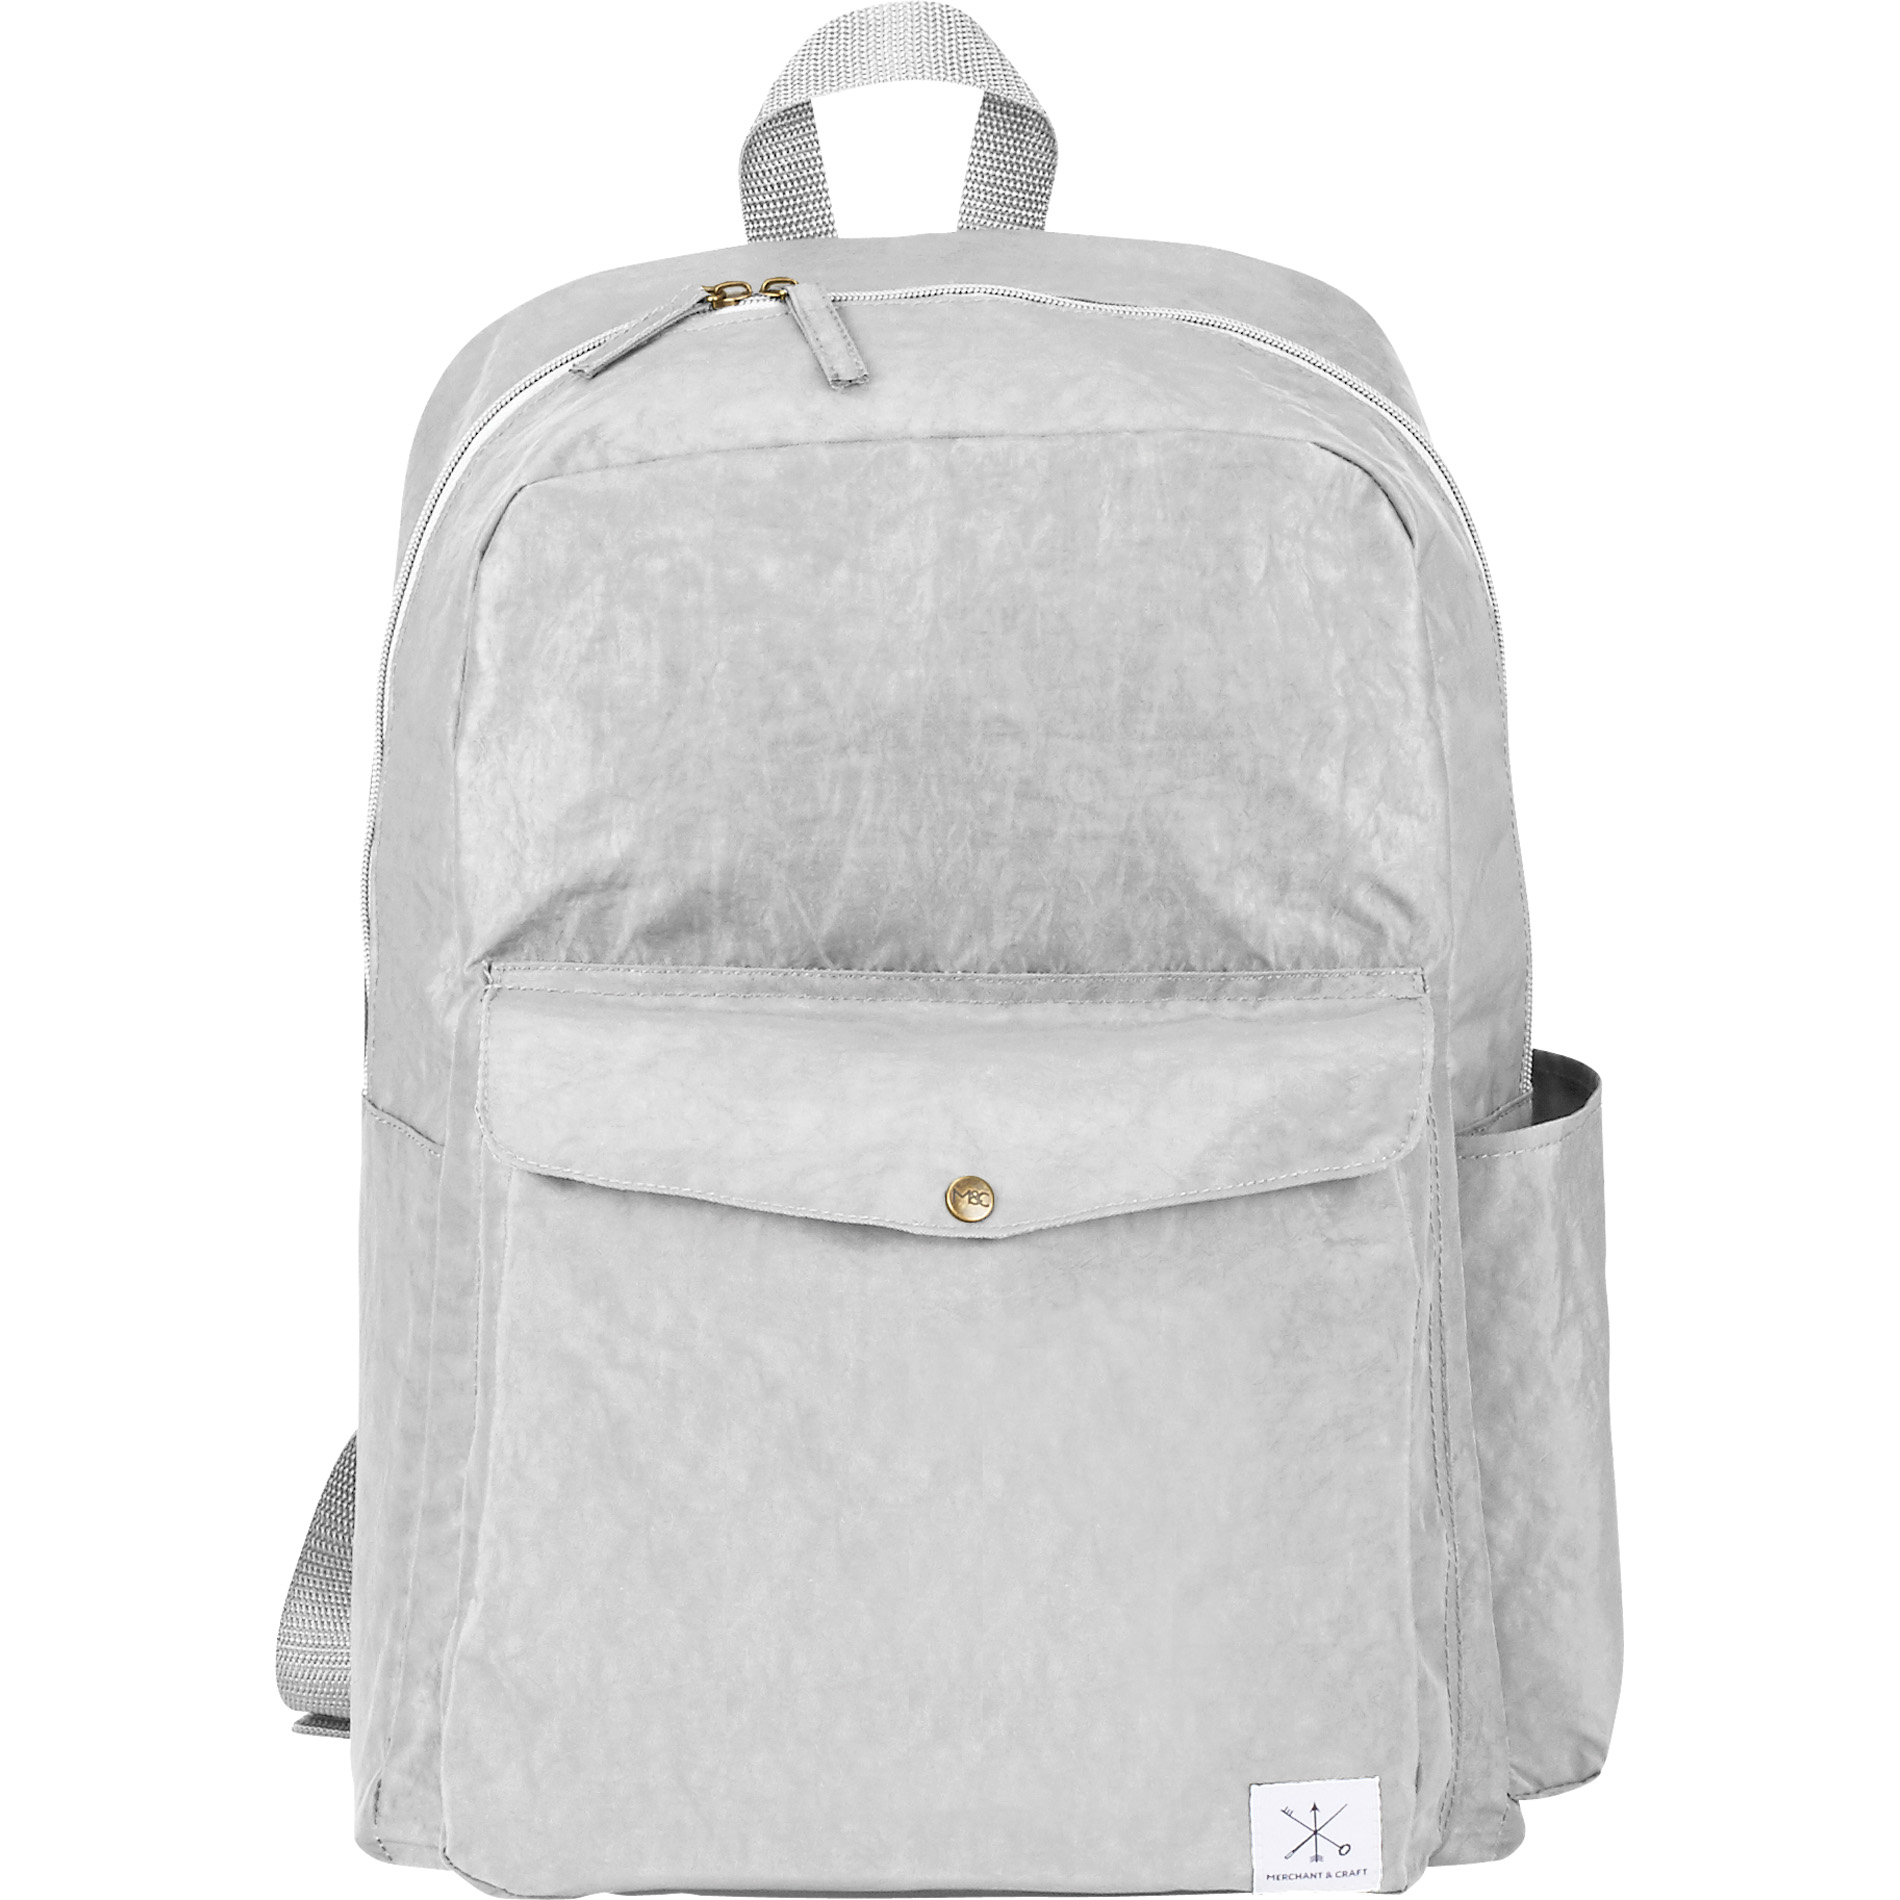 Merchant & Craft 3750-19 - Sawyer 15 Computer Backpack